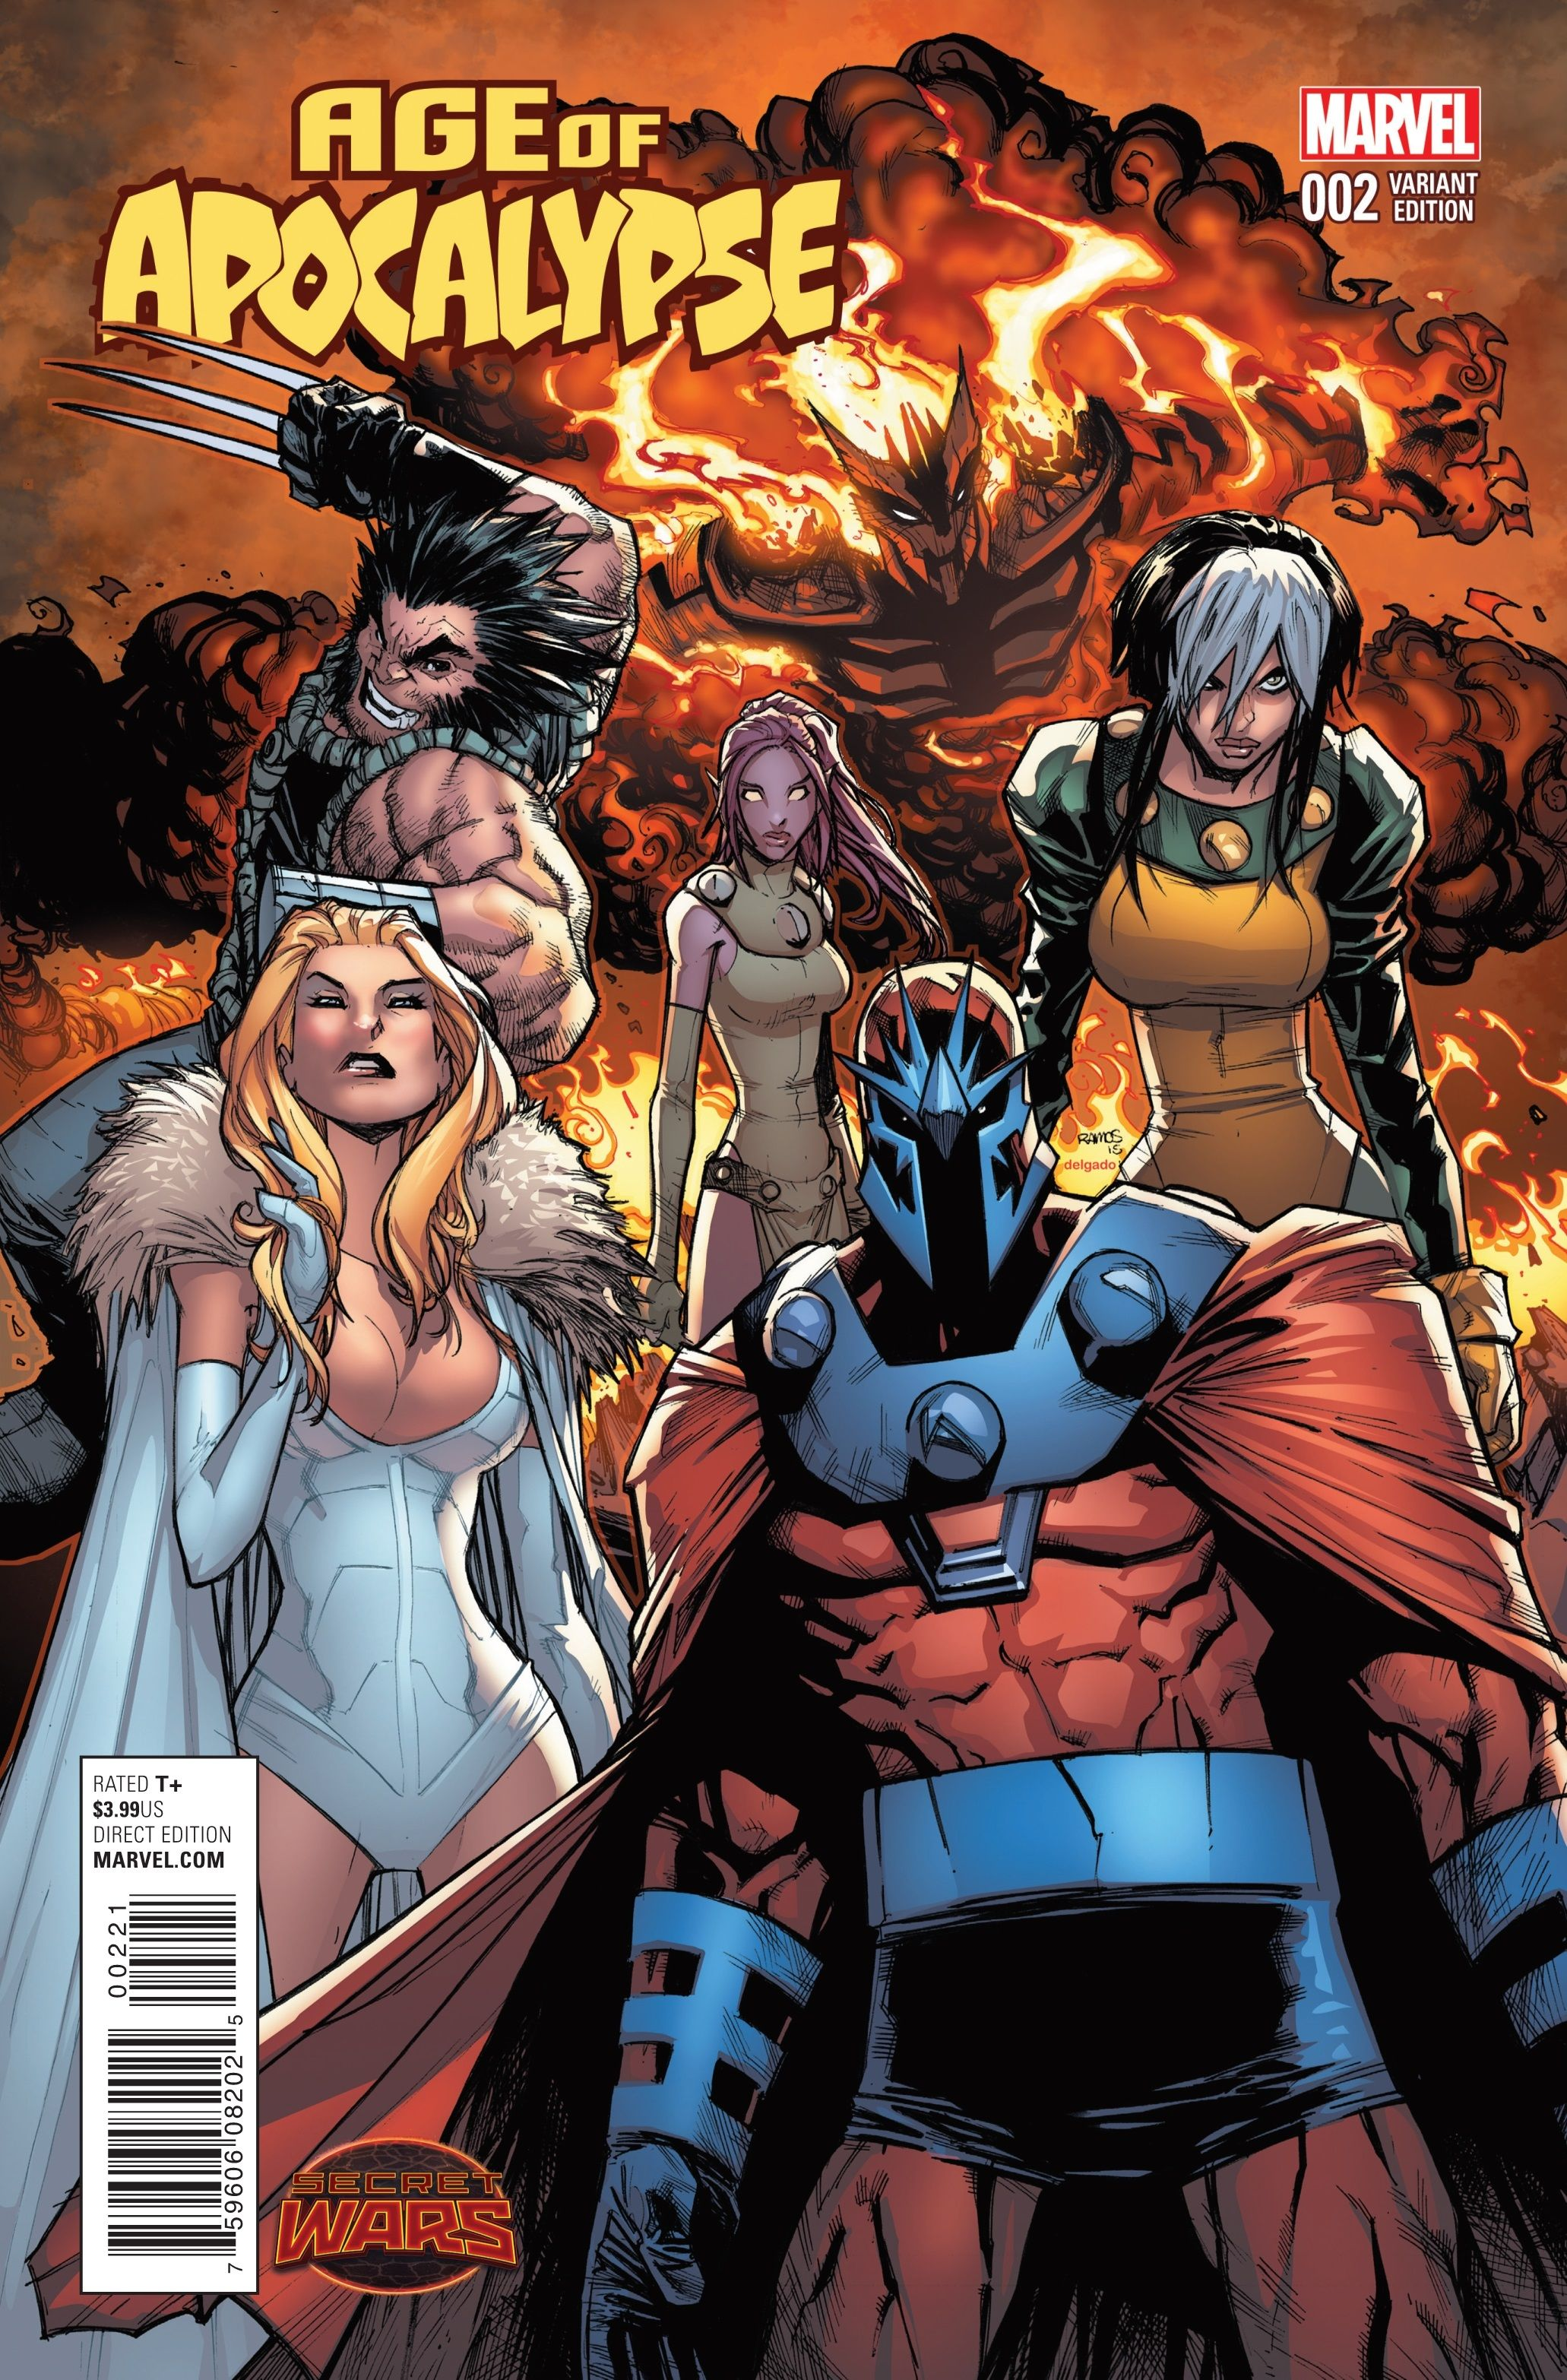 Preview: Age of Apocalypse #2, Age of Apocalypse #2 Story: Fabian